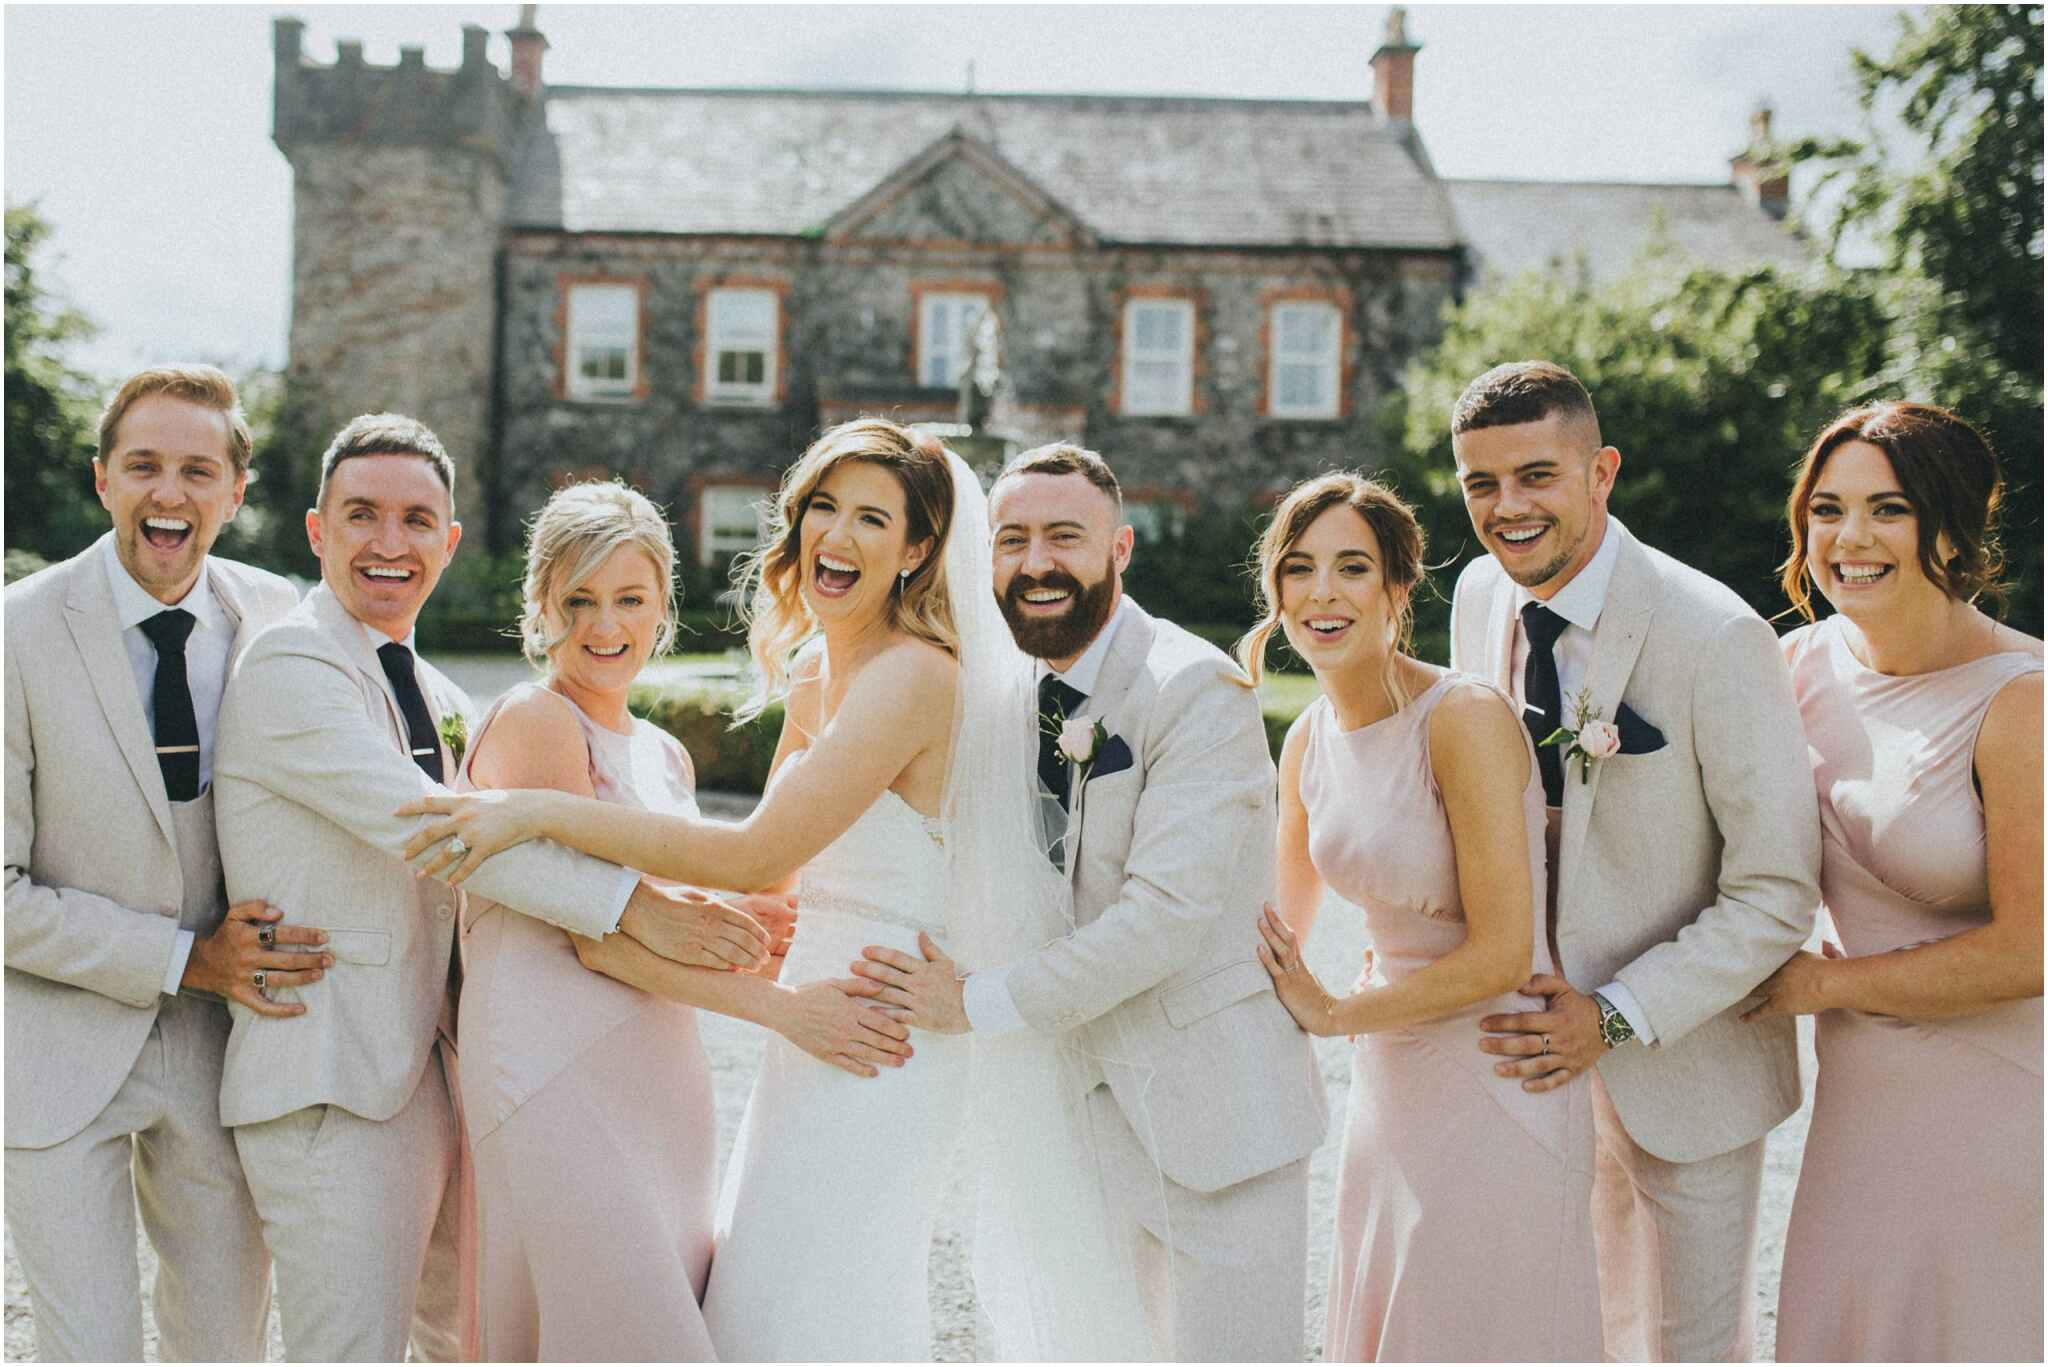 ballymagarvey village wedding 00104 - Fun and Relaxed wedding and elopement photography in Ireland, perfect for adventurous and outdoorsy couples